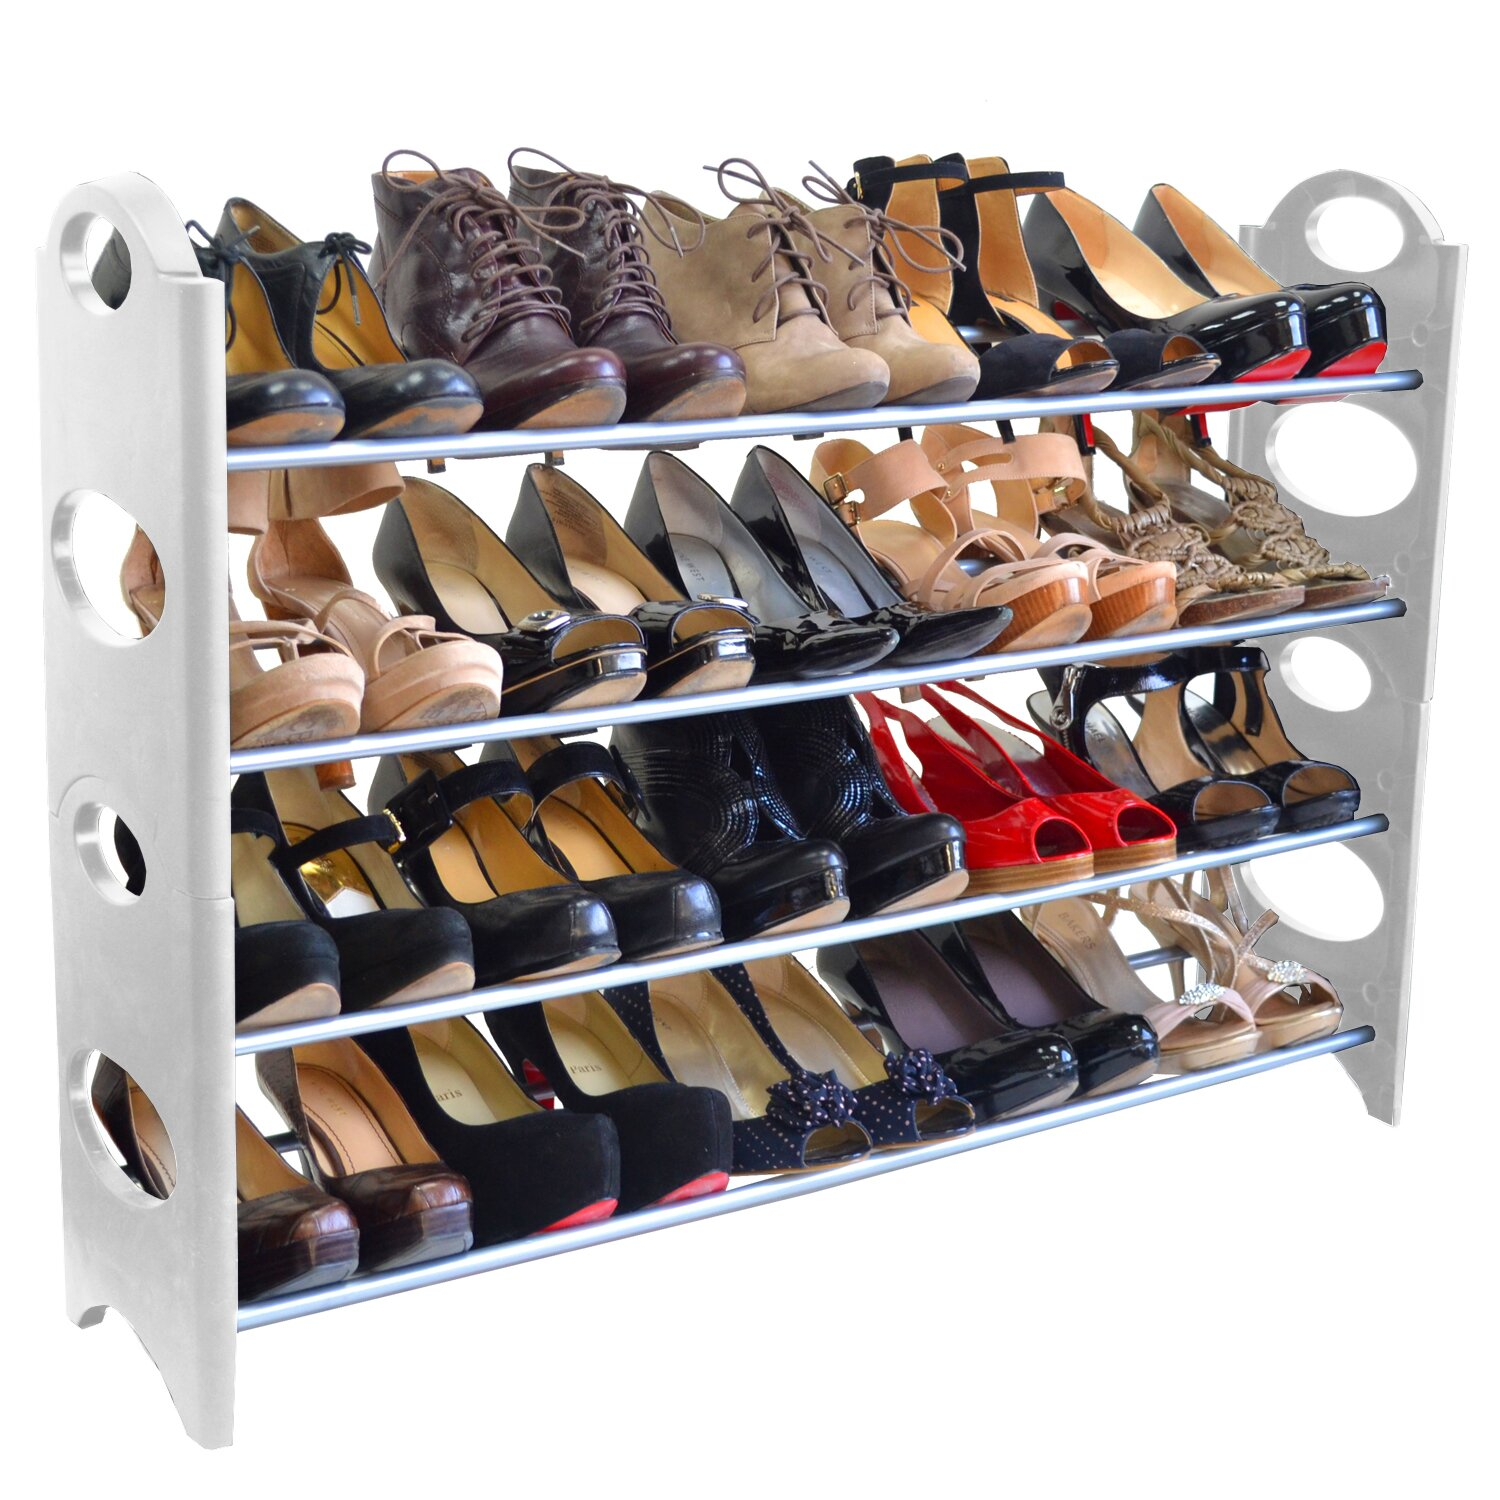 Linen Depot Direct 4 Tier Shoe Rack LIDD1002 on home office furniture depot